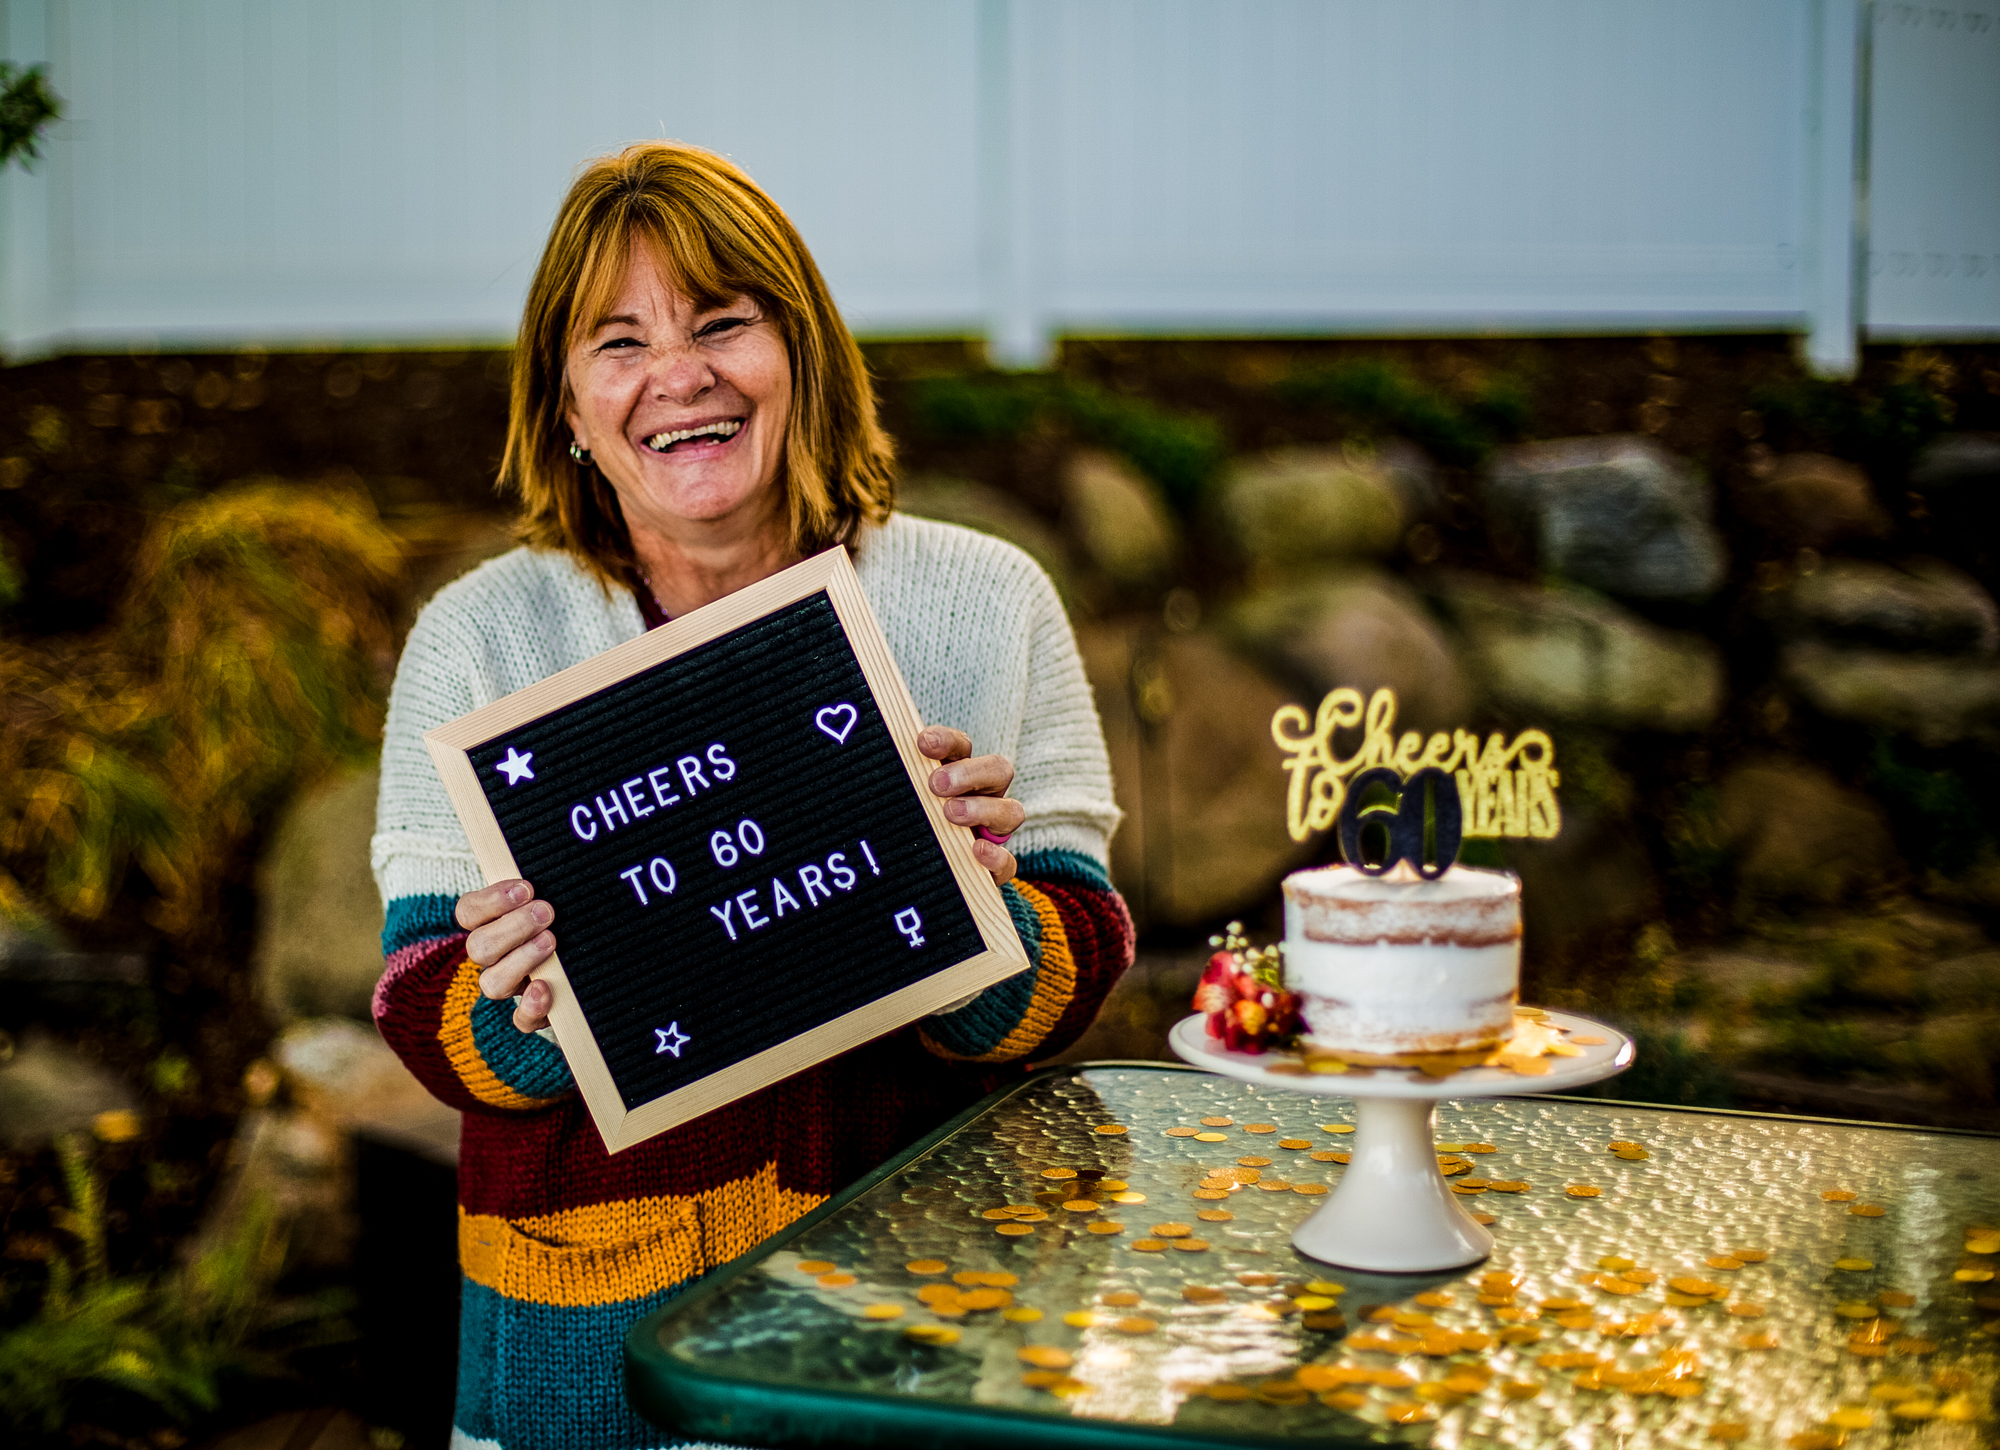 Woman smiles and holds happy birthday sign next to cake for 60th birthday celebration